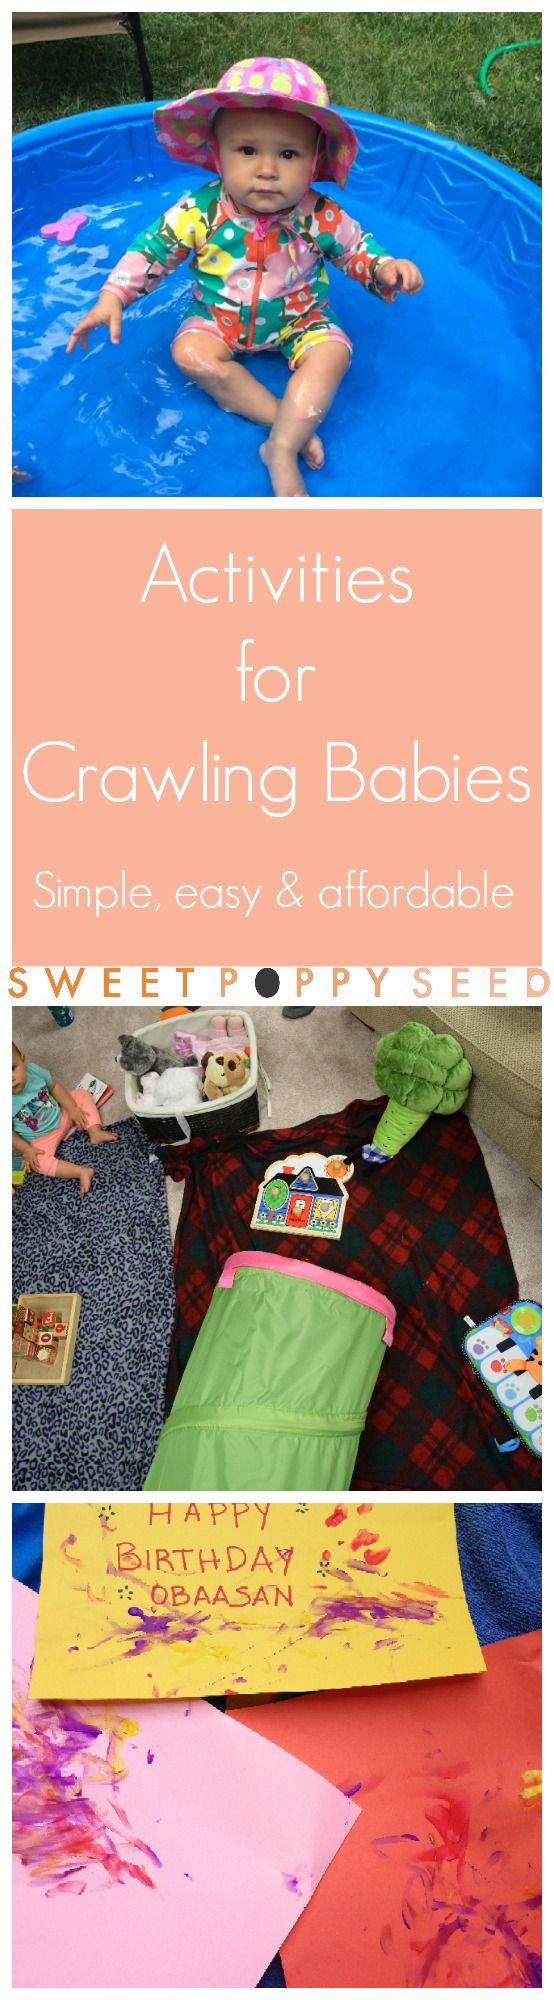 Have no fear, there are definitely lots of fun and creative activities for your crawling buddies! Here are our 13 favorite ones!